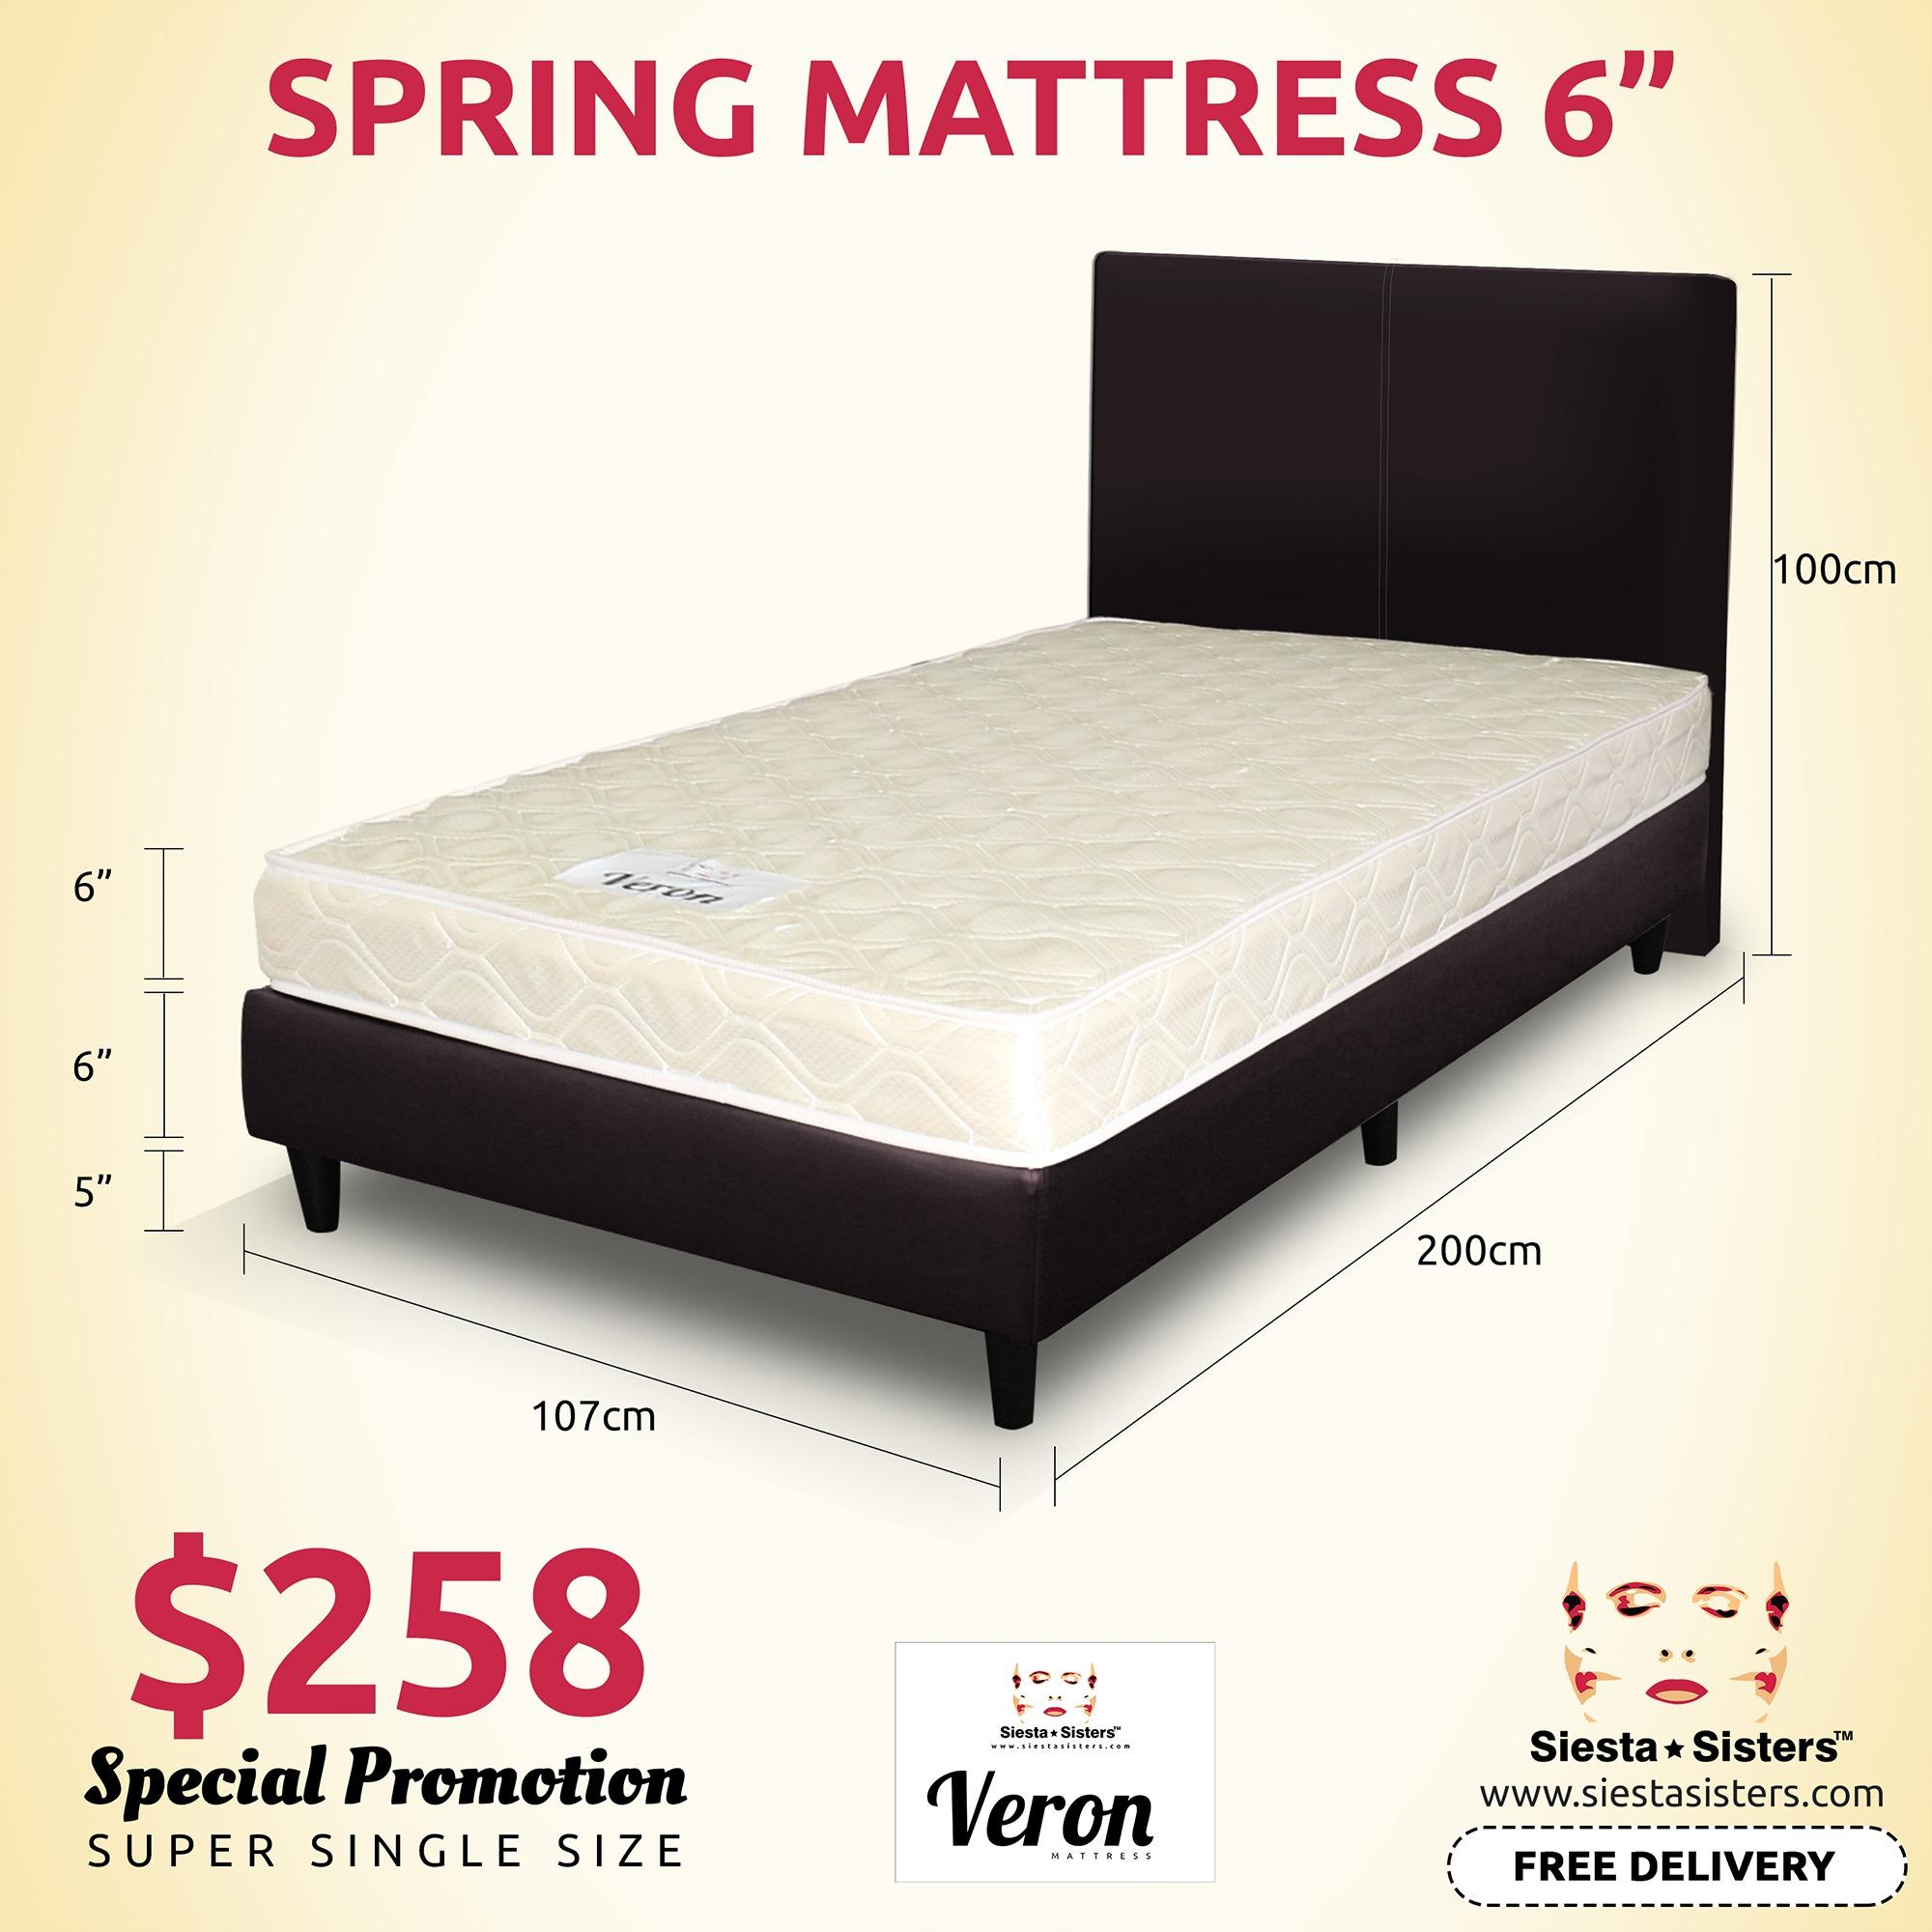 6 Inches Spring Mattress With Divan Bed Frame And Headboard